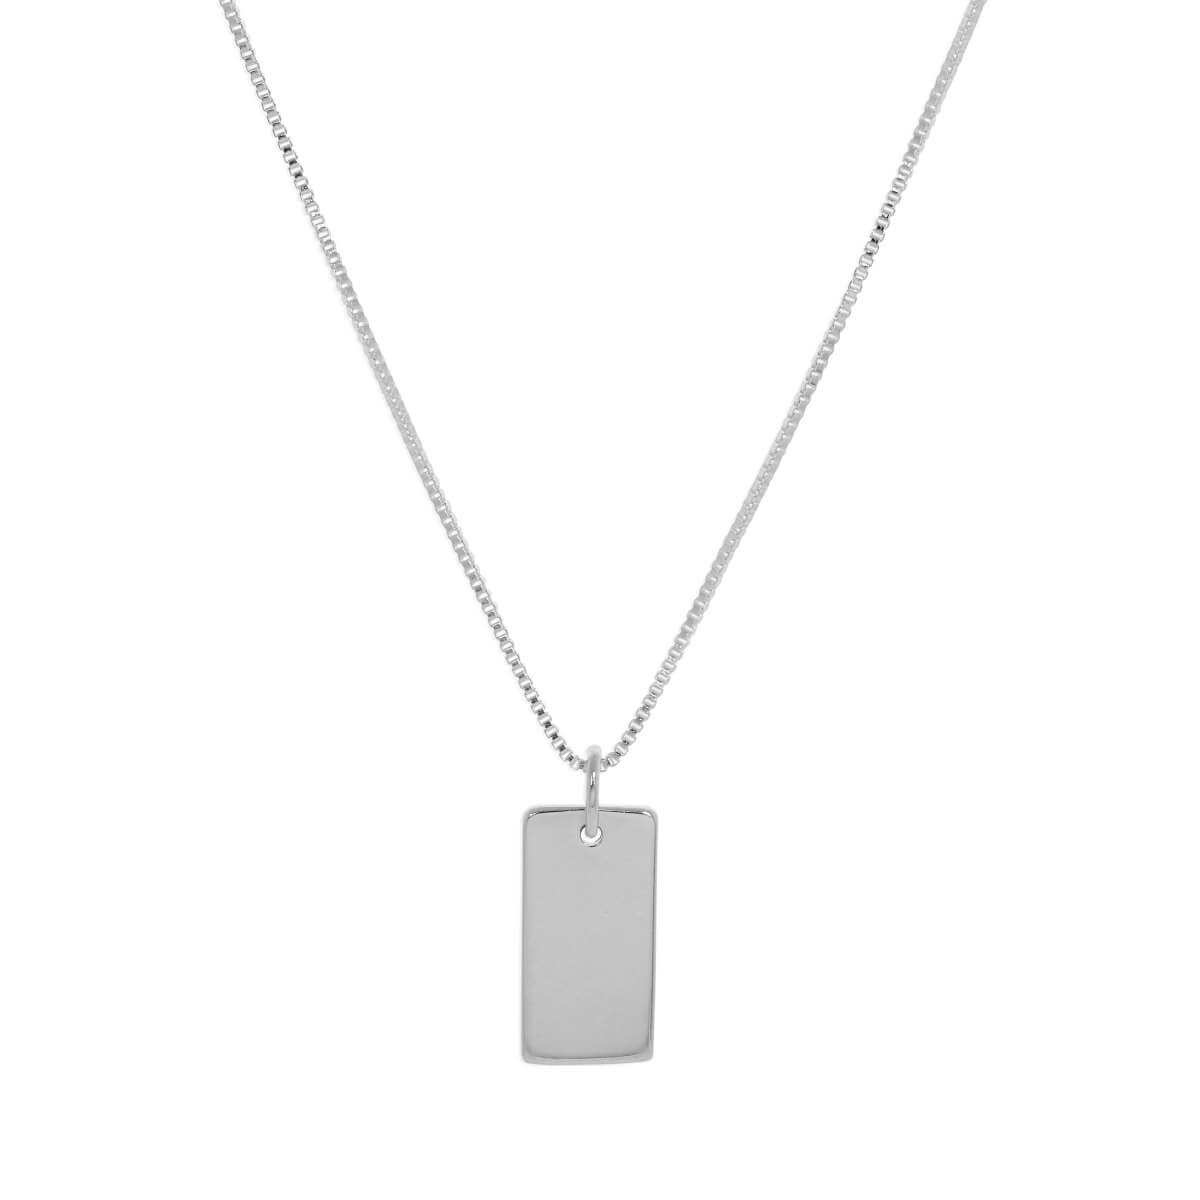 Sterling Silver Mini Engravable Dog Tag Necklace - 14 - 22 Inches